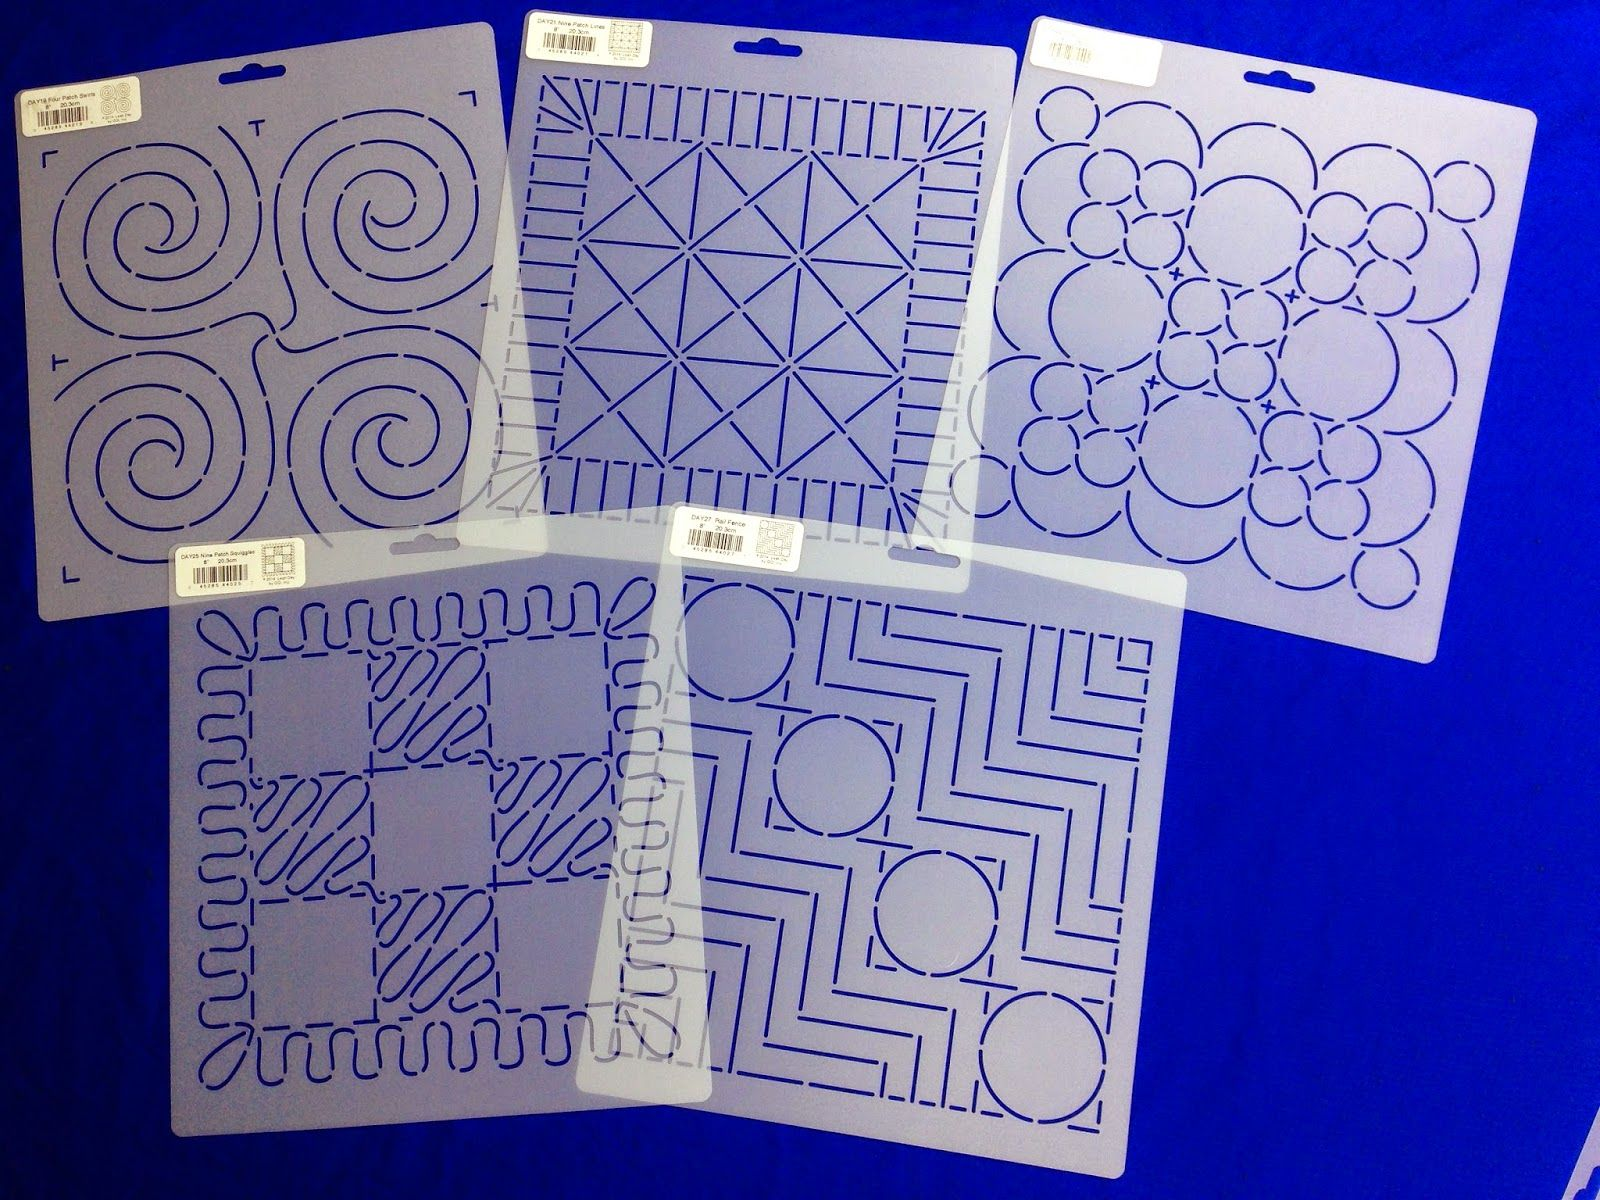 Free Motion Quilting Leah Day Free Motion Quilting Quilting Stitch Patterns Free Motion Quilt Designs